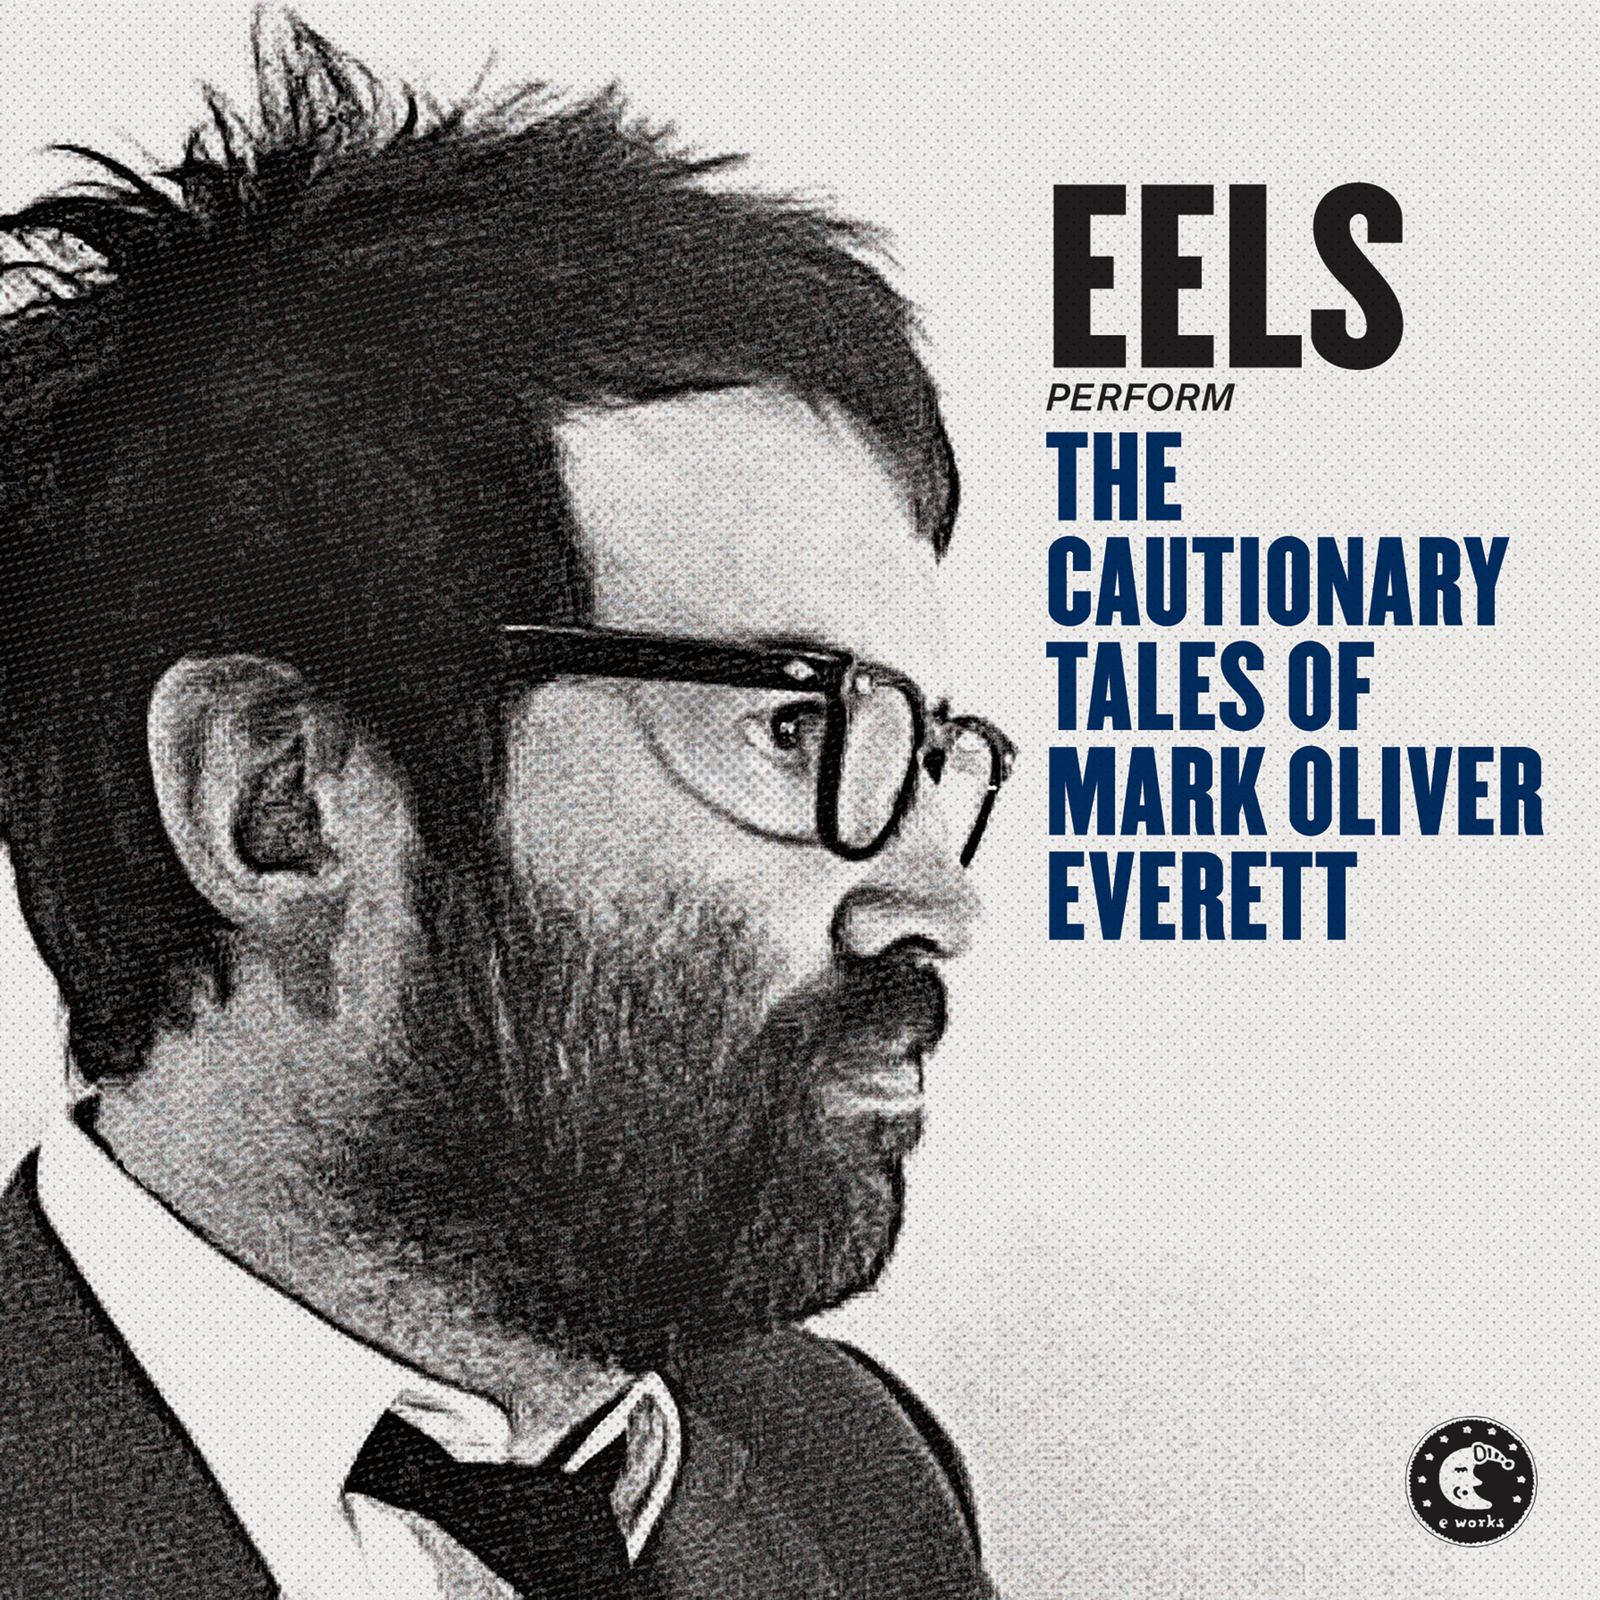 Abgehörßt/ Eels: The Cautionary Tales COVER